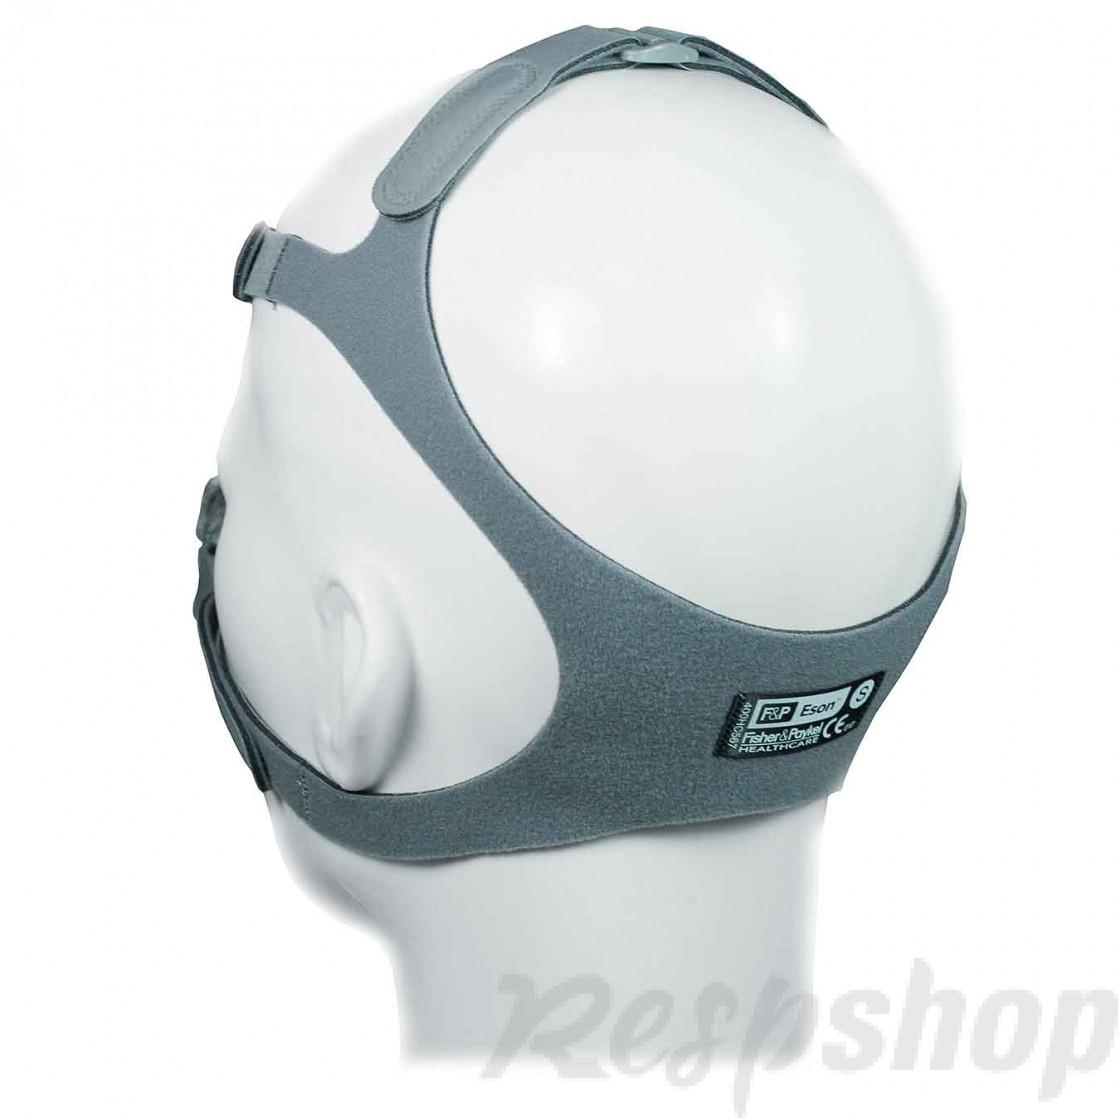 Headgear for Eson CPAP Mask